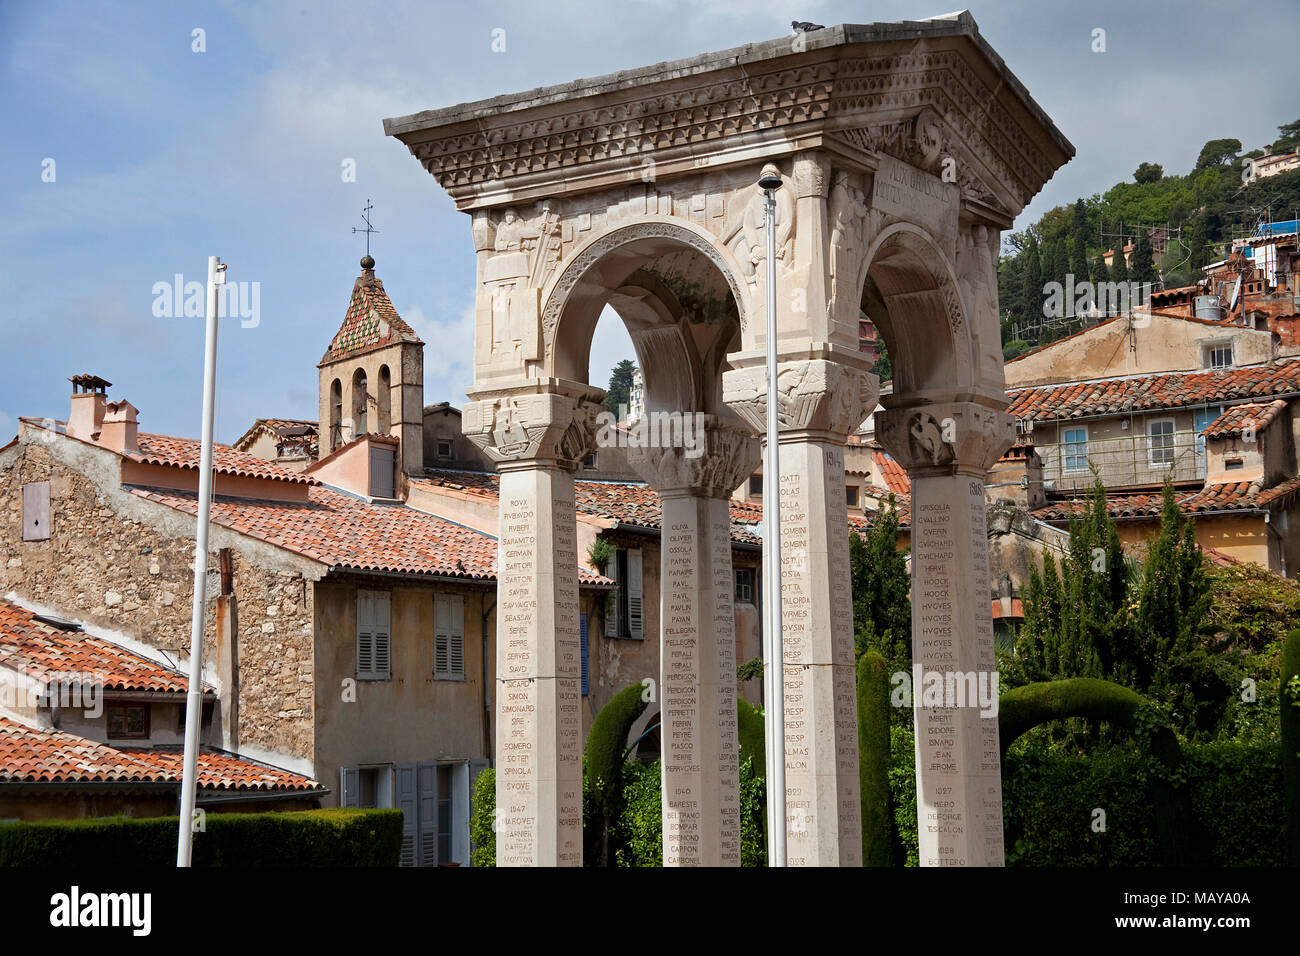 Aux Grassois Morts Pour La France, war monument at cathedral Notre-Dame du Puy, old town of Grasse, Alpes-Maritimes, South France, France, Europe Stock Photo